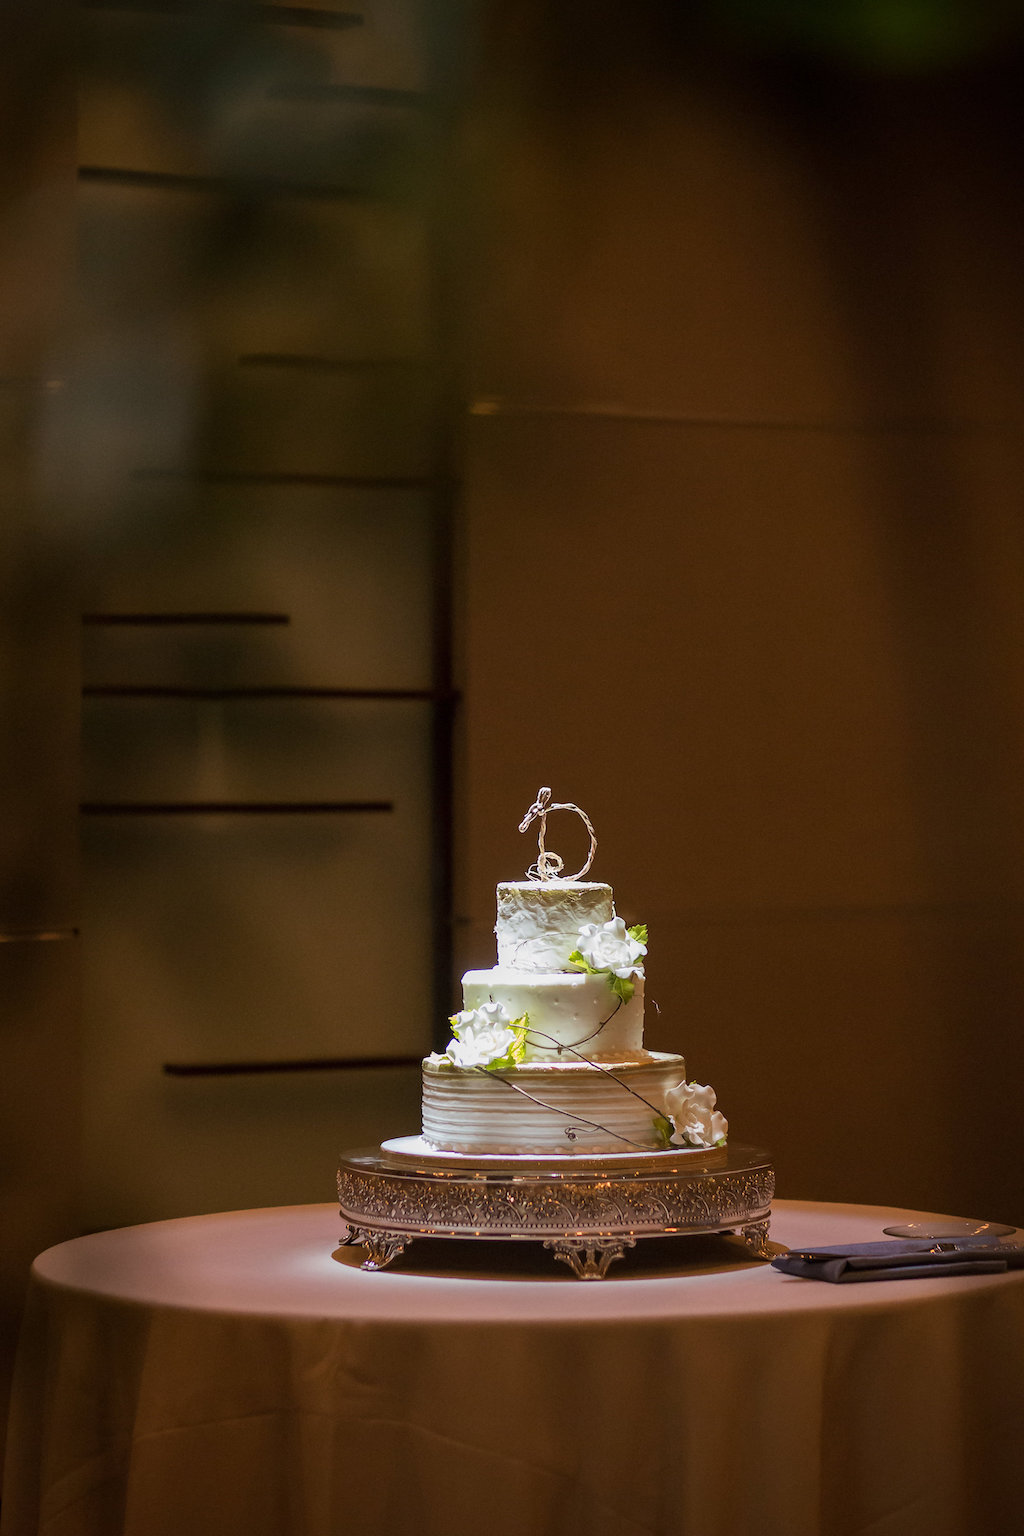 Three Tier White Wedding Cake with White Flowers on Silver Cake Stand | Tampa Bay Photographer Cat Pennenga Photography